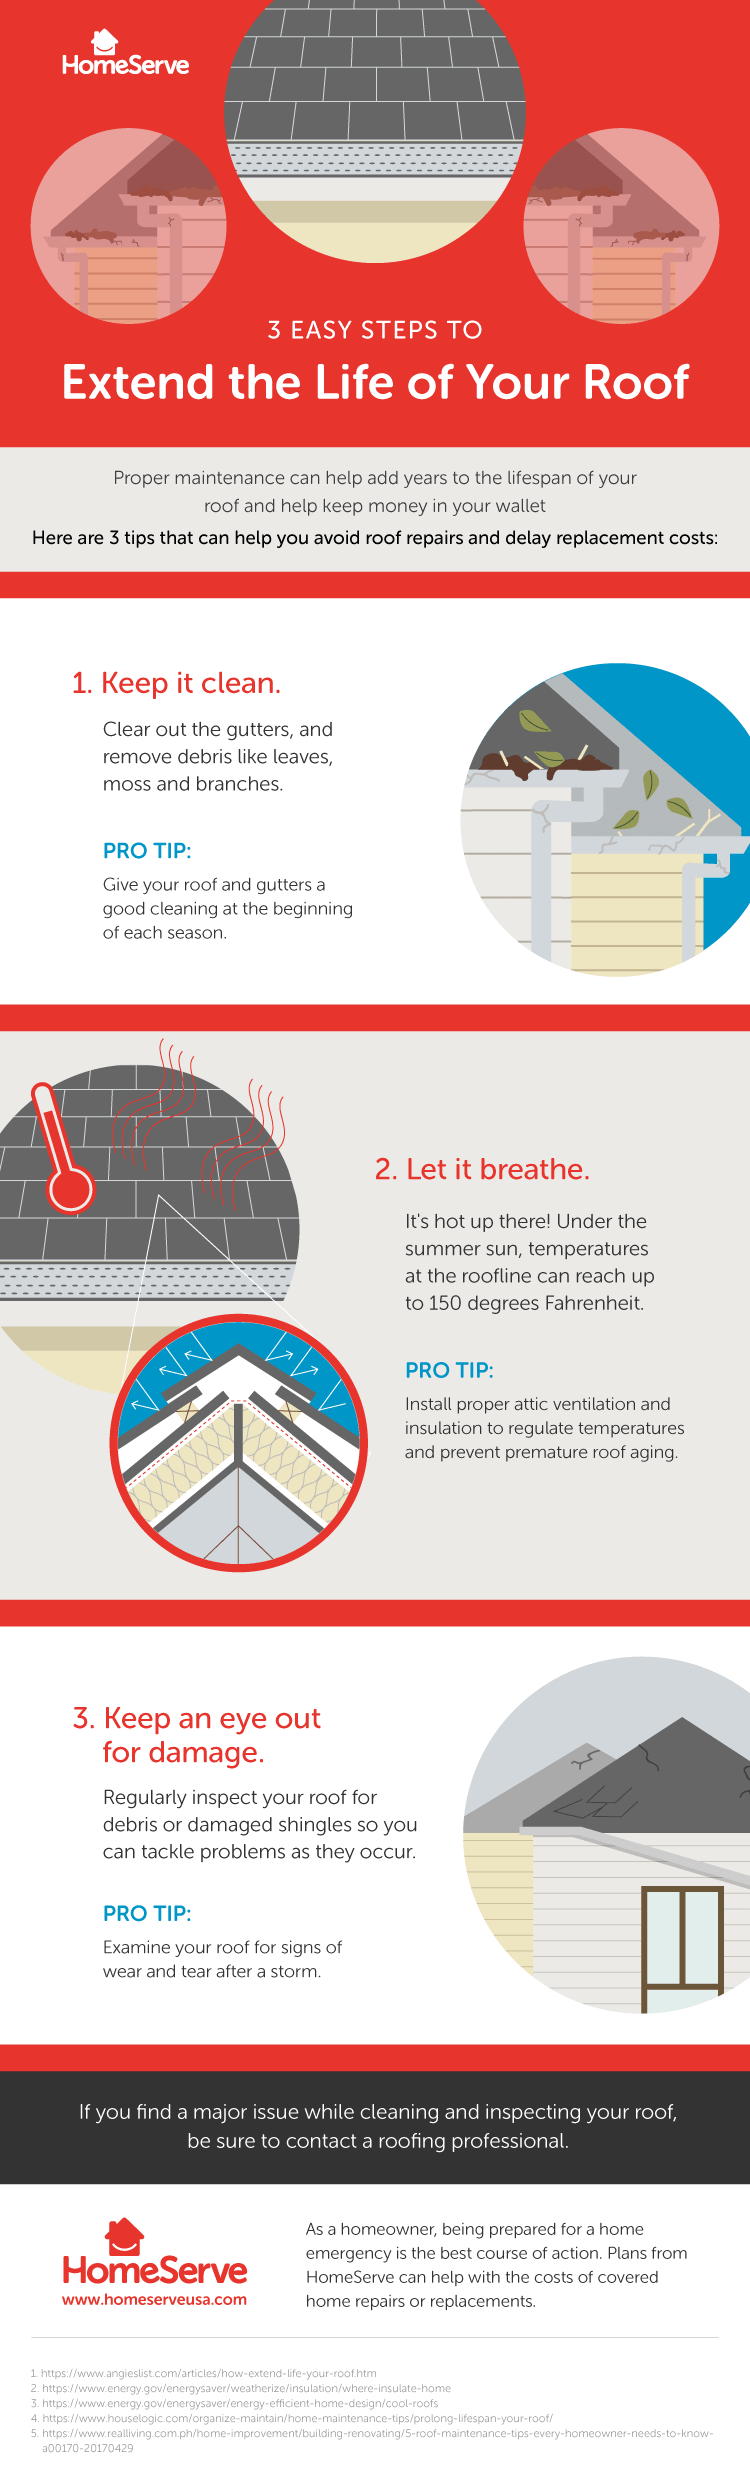 Tips to Extend Roof Life